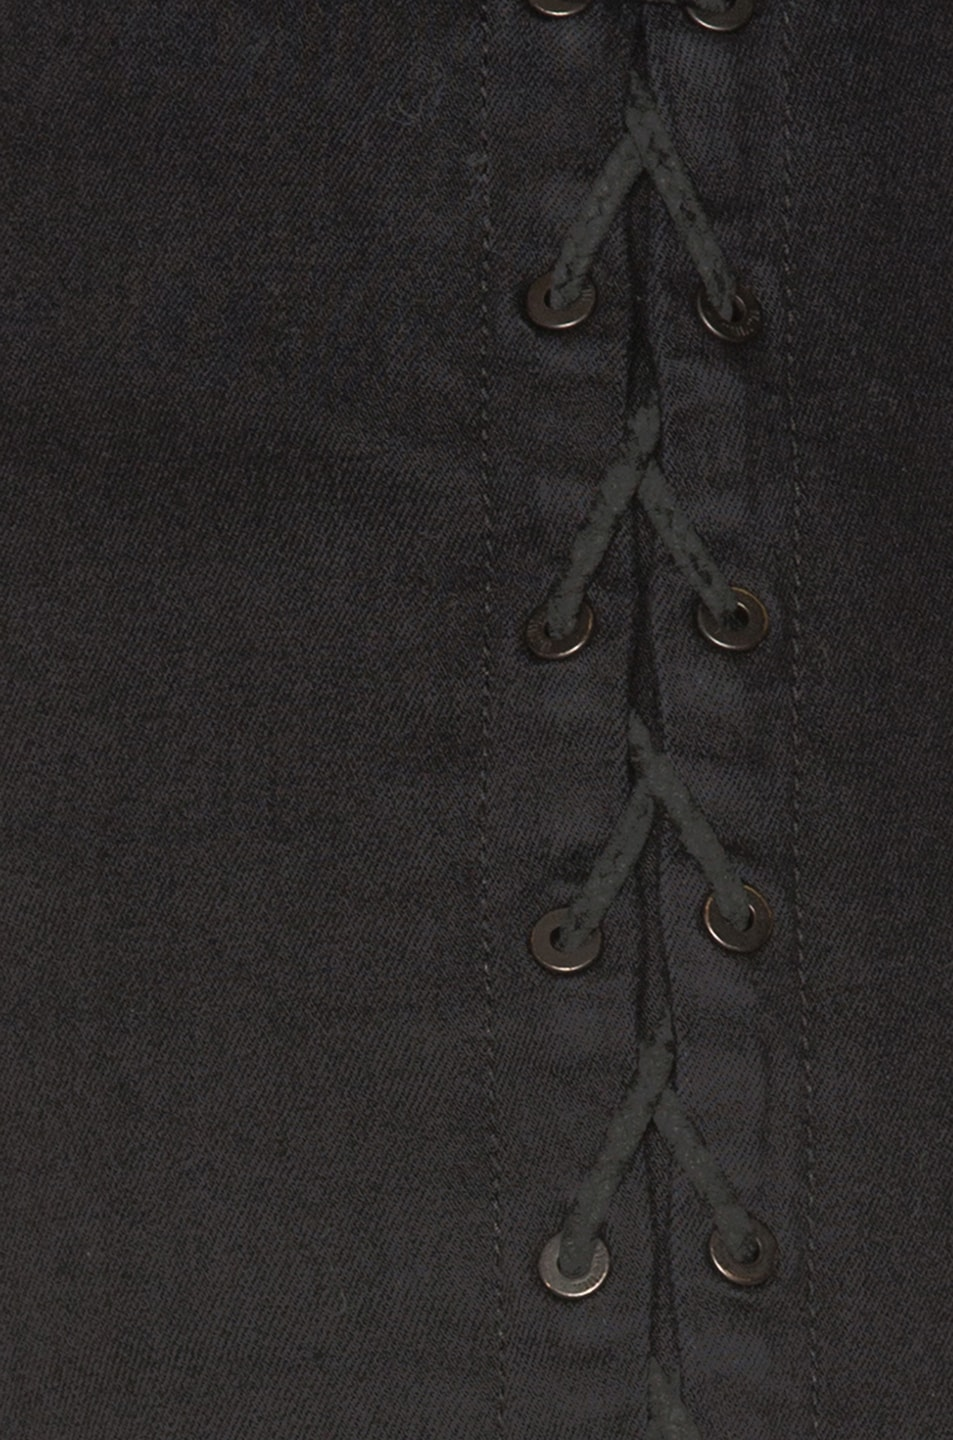 Image 7 of Unravel Side Seam Lace Up Denim Pants in Black